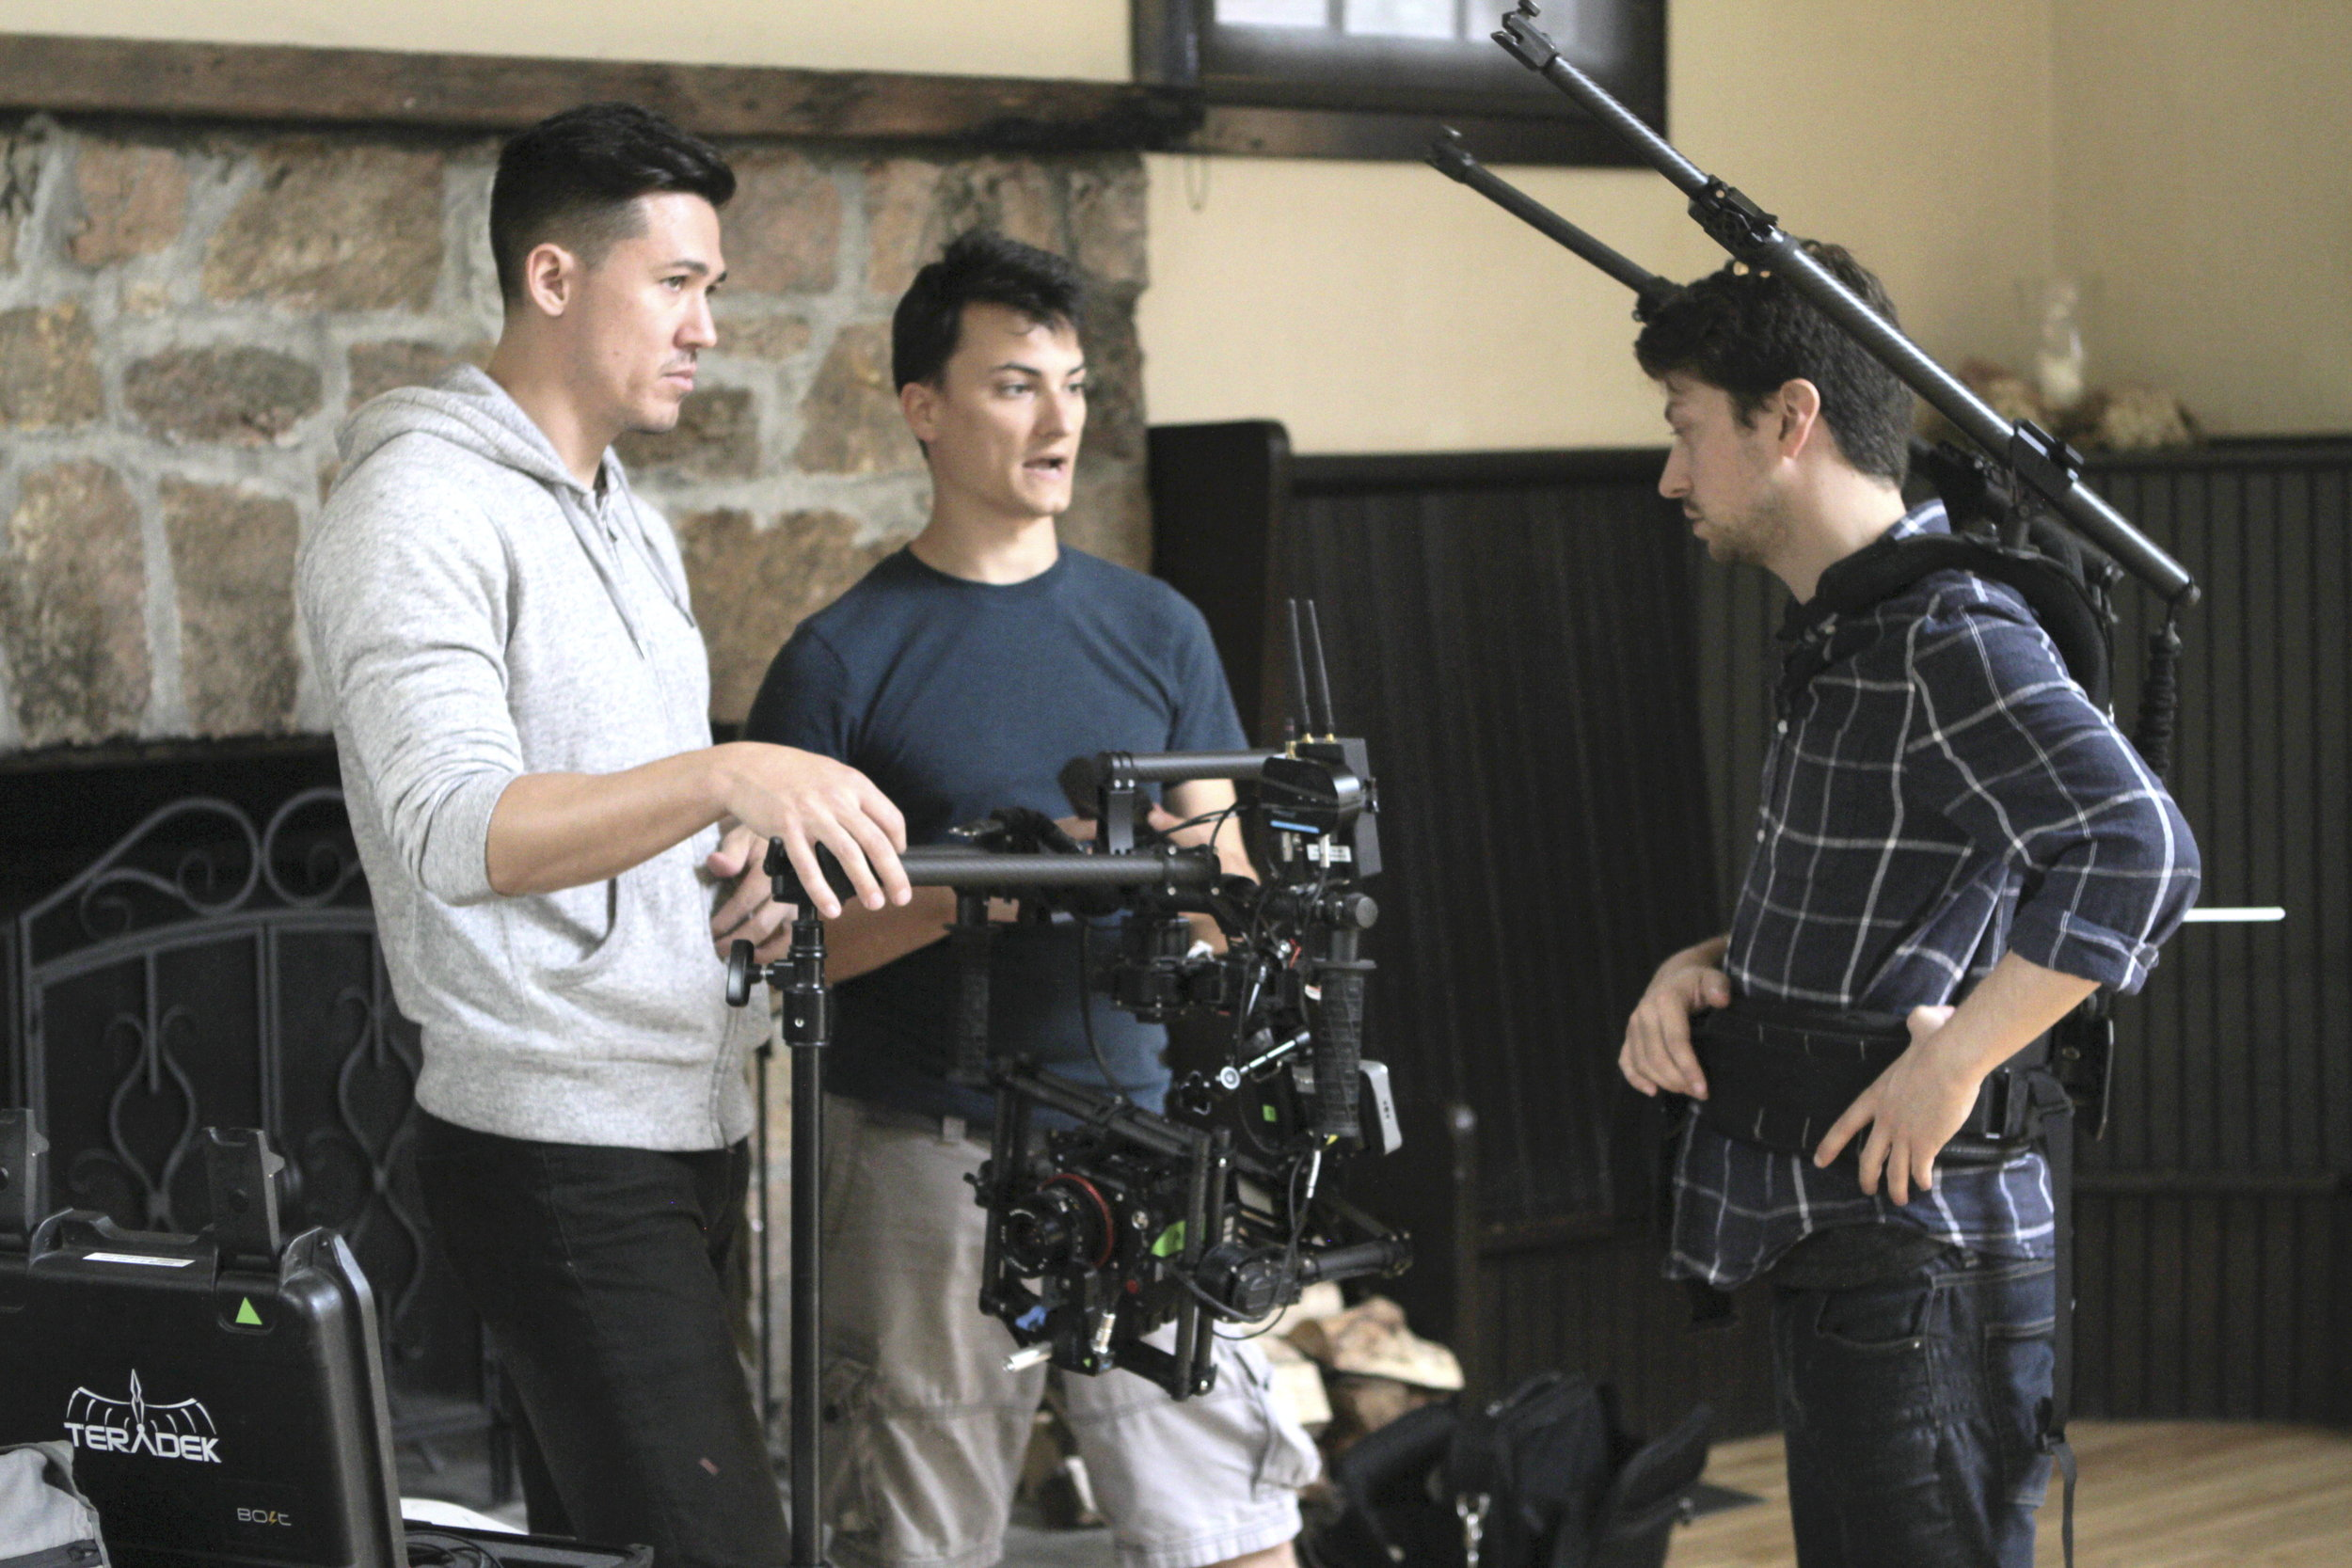 Camera Assistants Robert Cauble, Kevin Marshall and cinematographer Alexander Sablow discuss the shoot day.